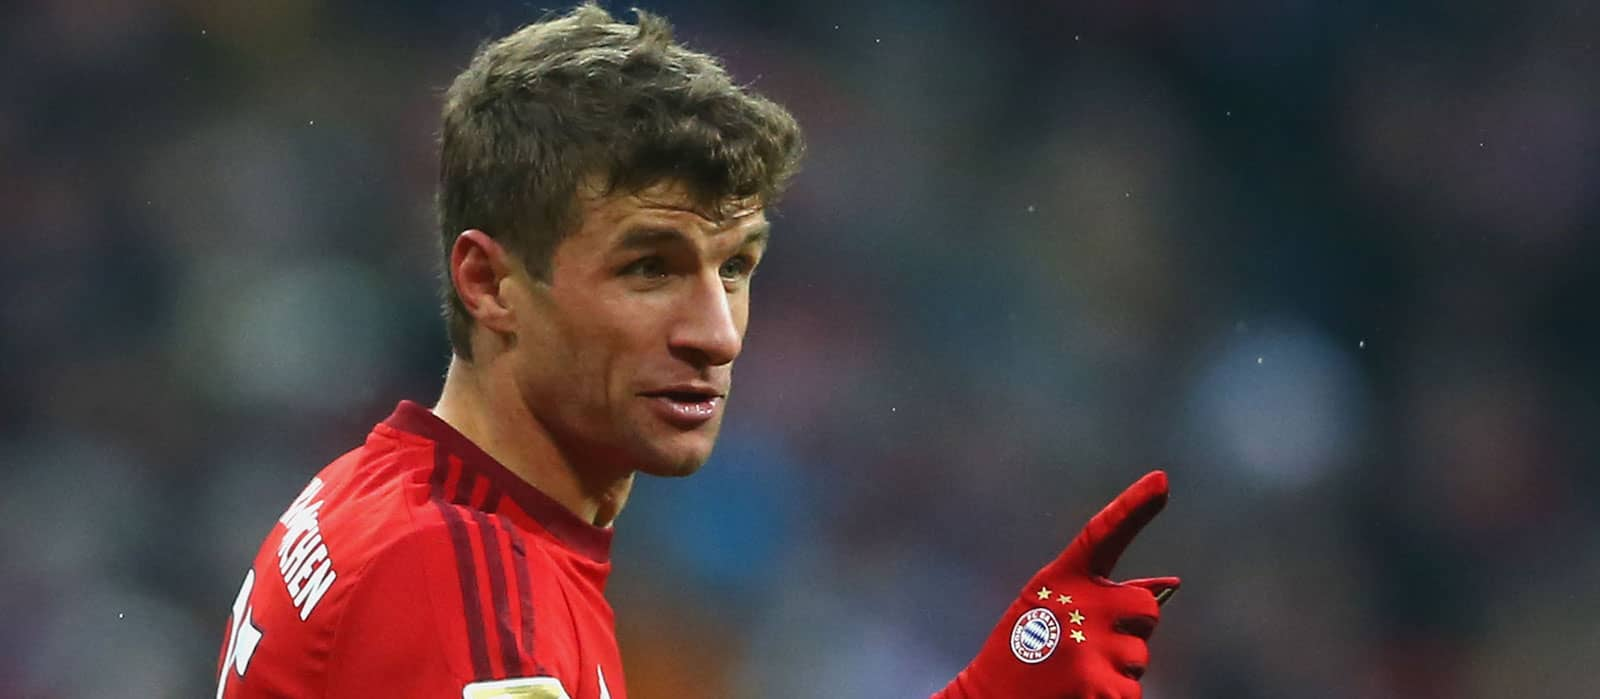 Bayern Munich financial partner Jan-Christian Dreesen confirms Man United's €100m bid